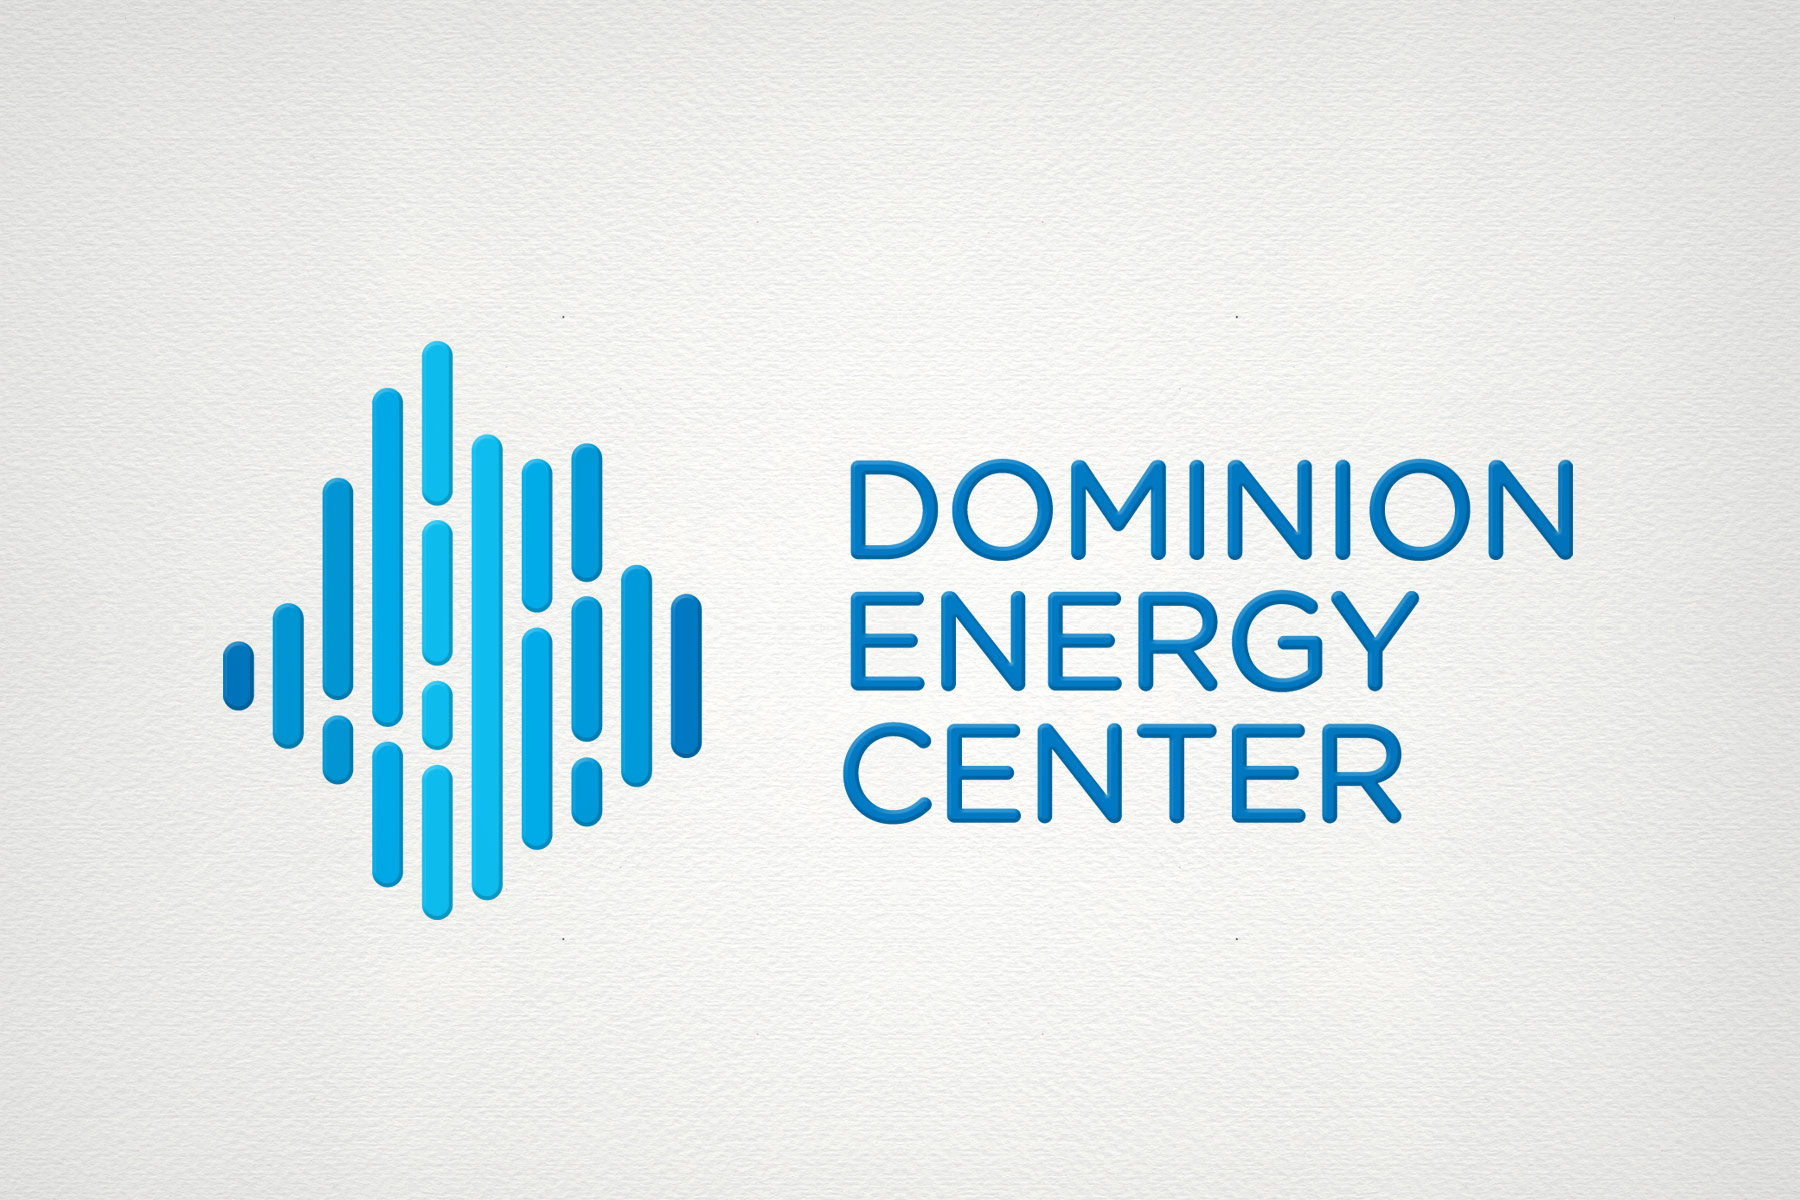 Logos Dominion Energy Center